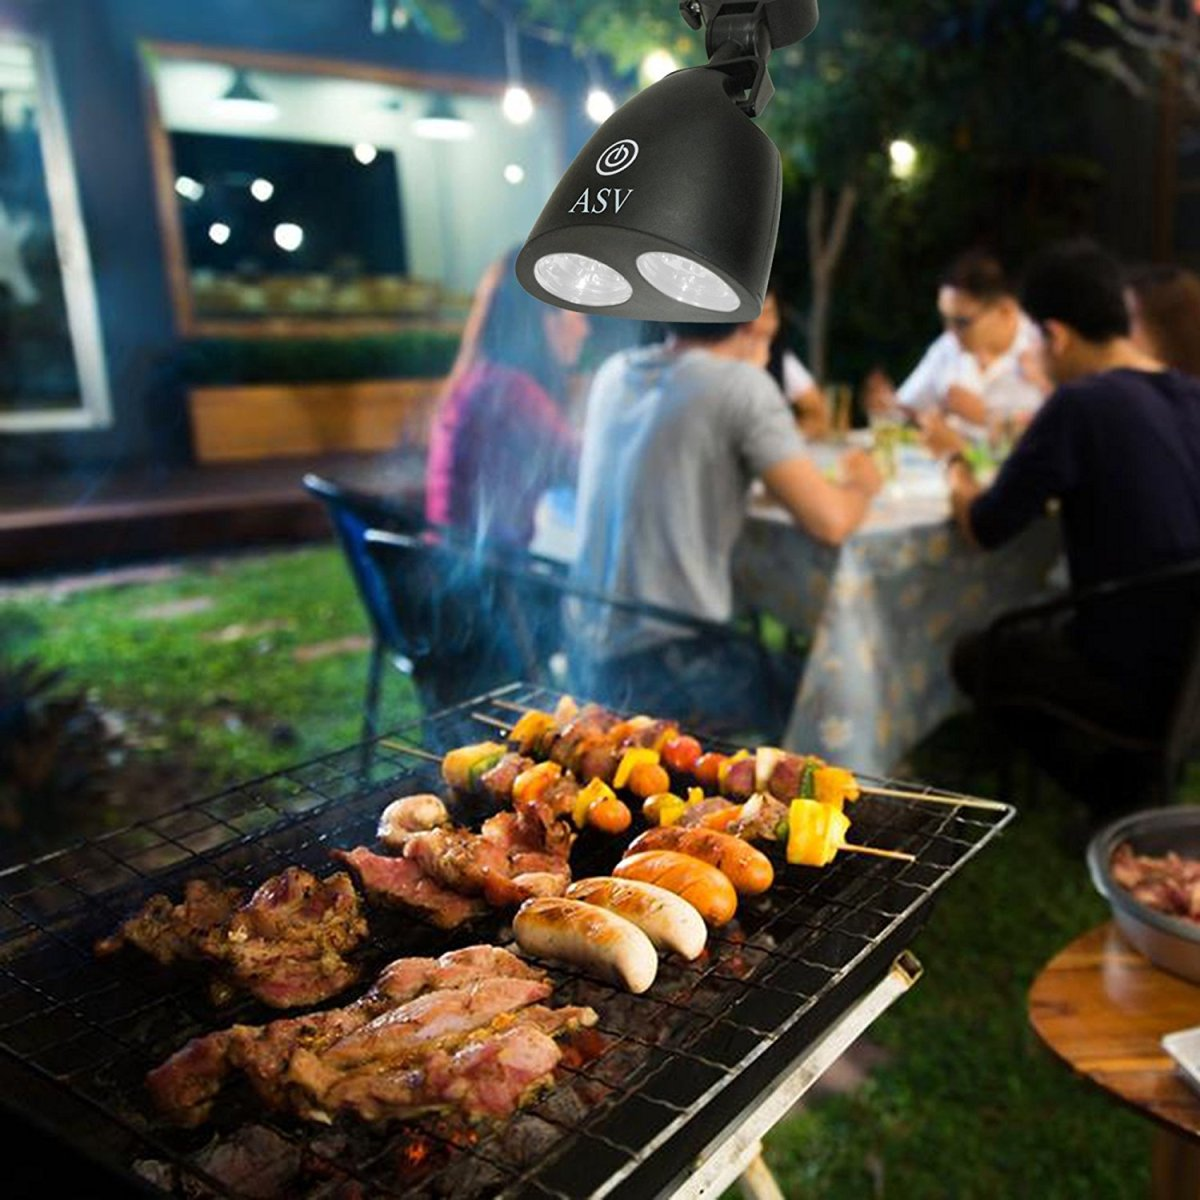 TOP 10 BEST LED GRILL LIGHTS FOR BBQ